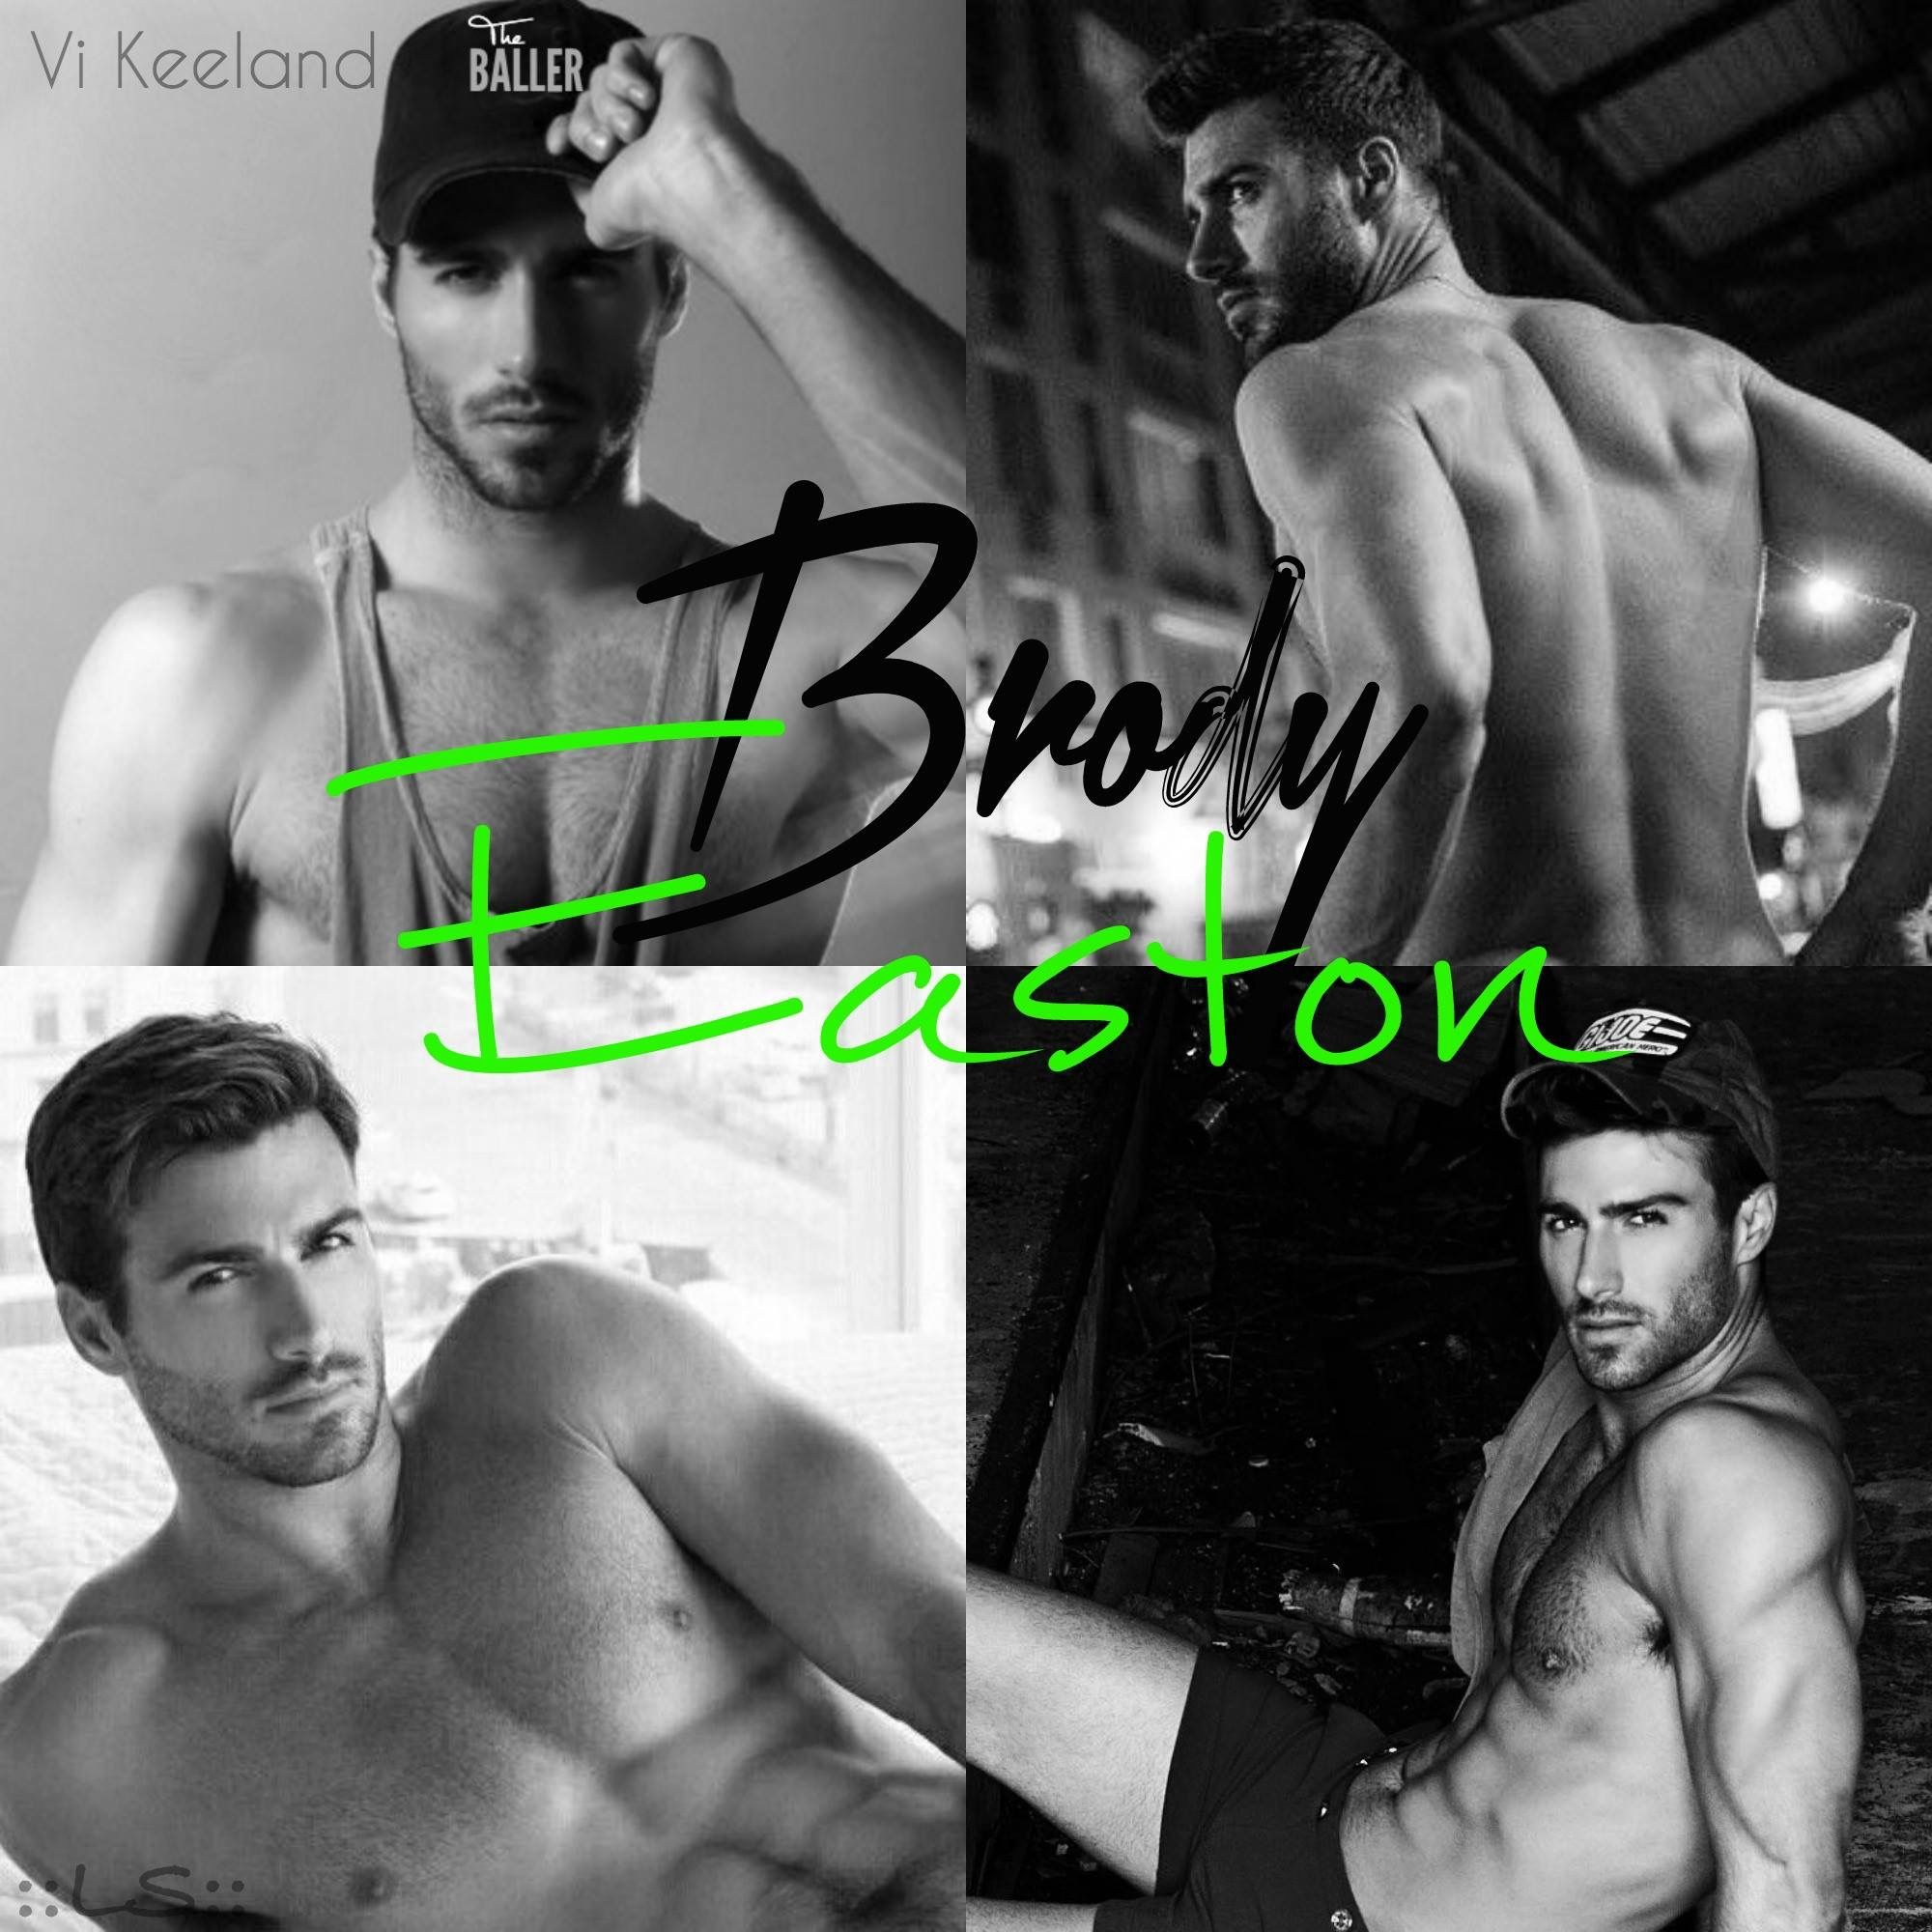 Brody from The Baller by Vi Keeland